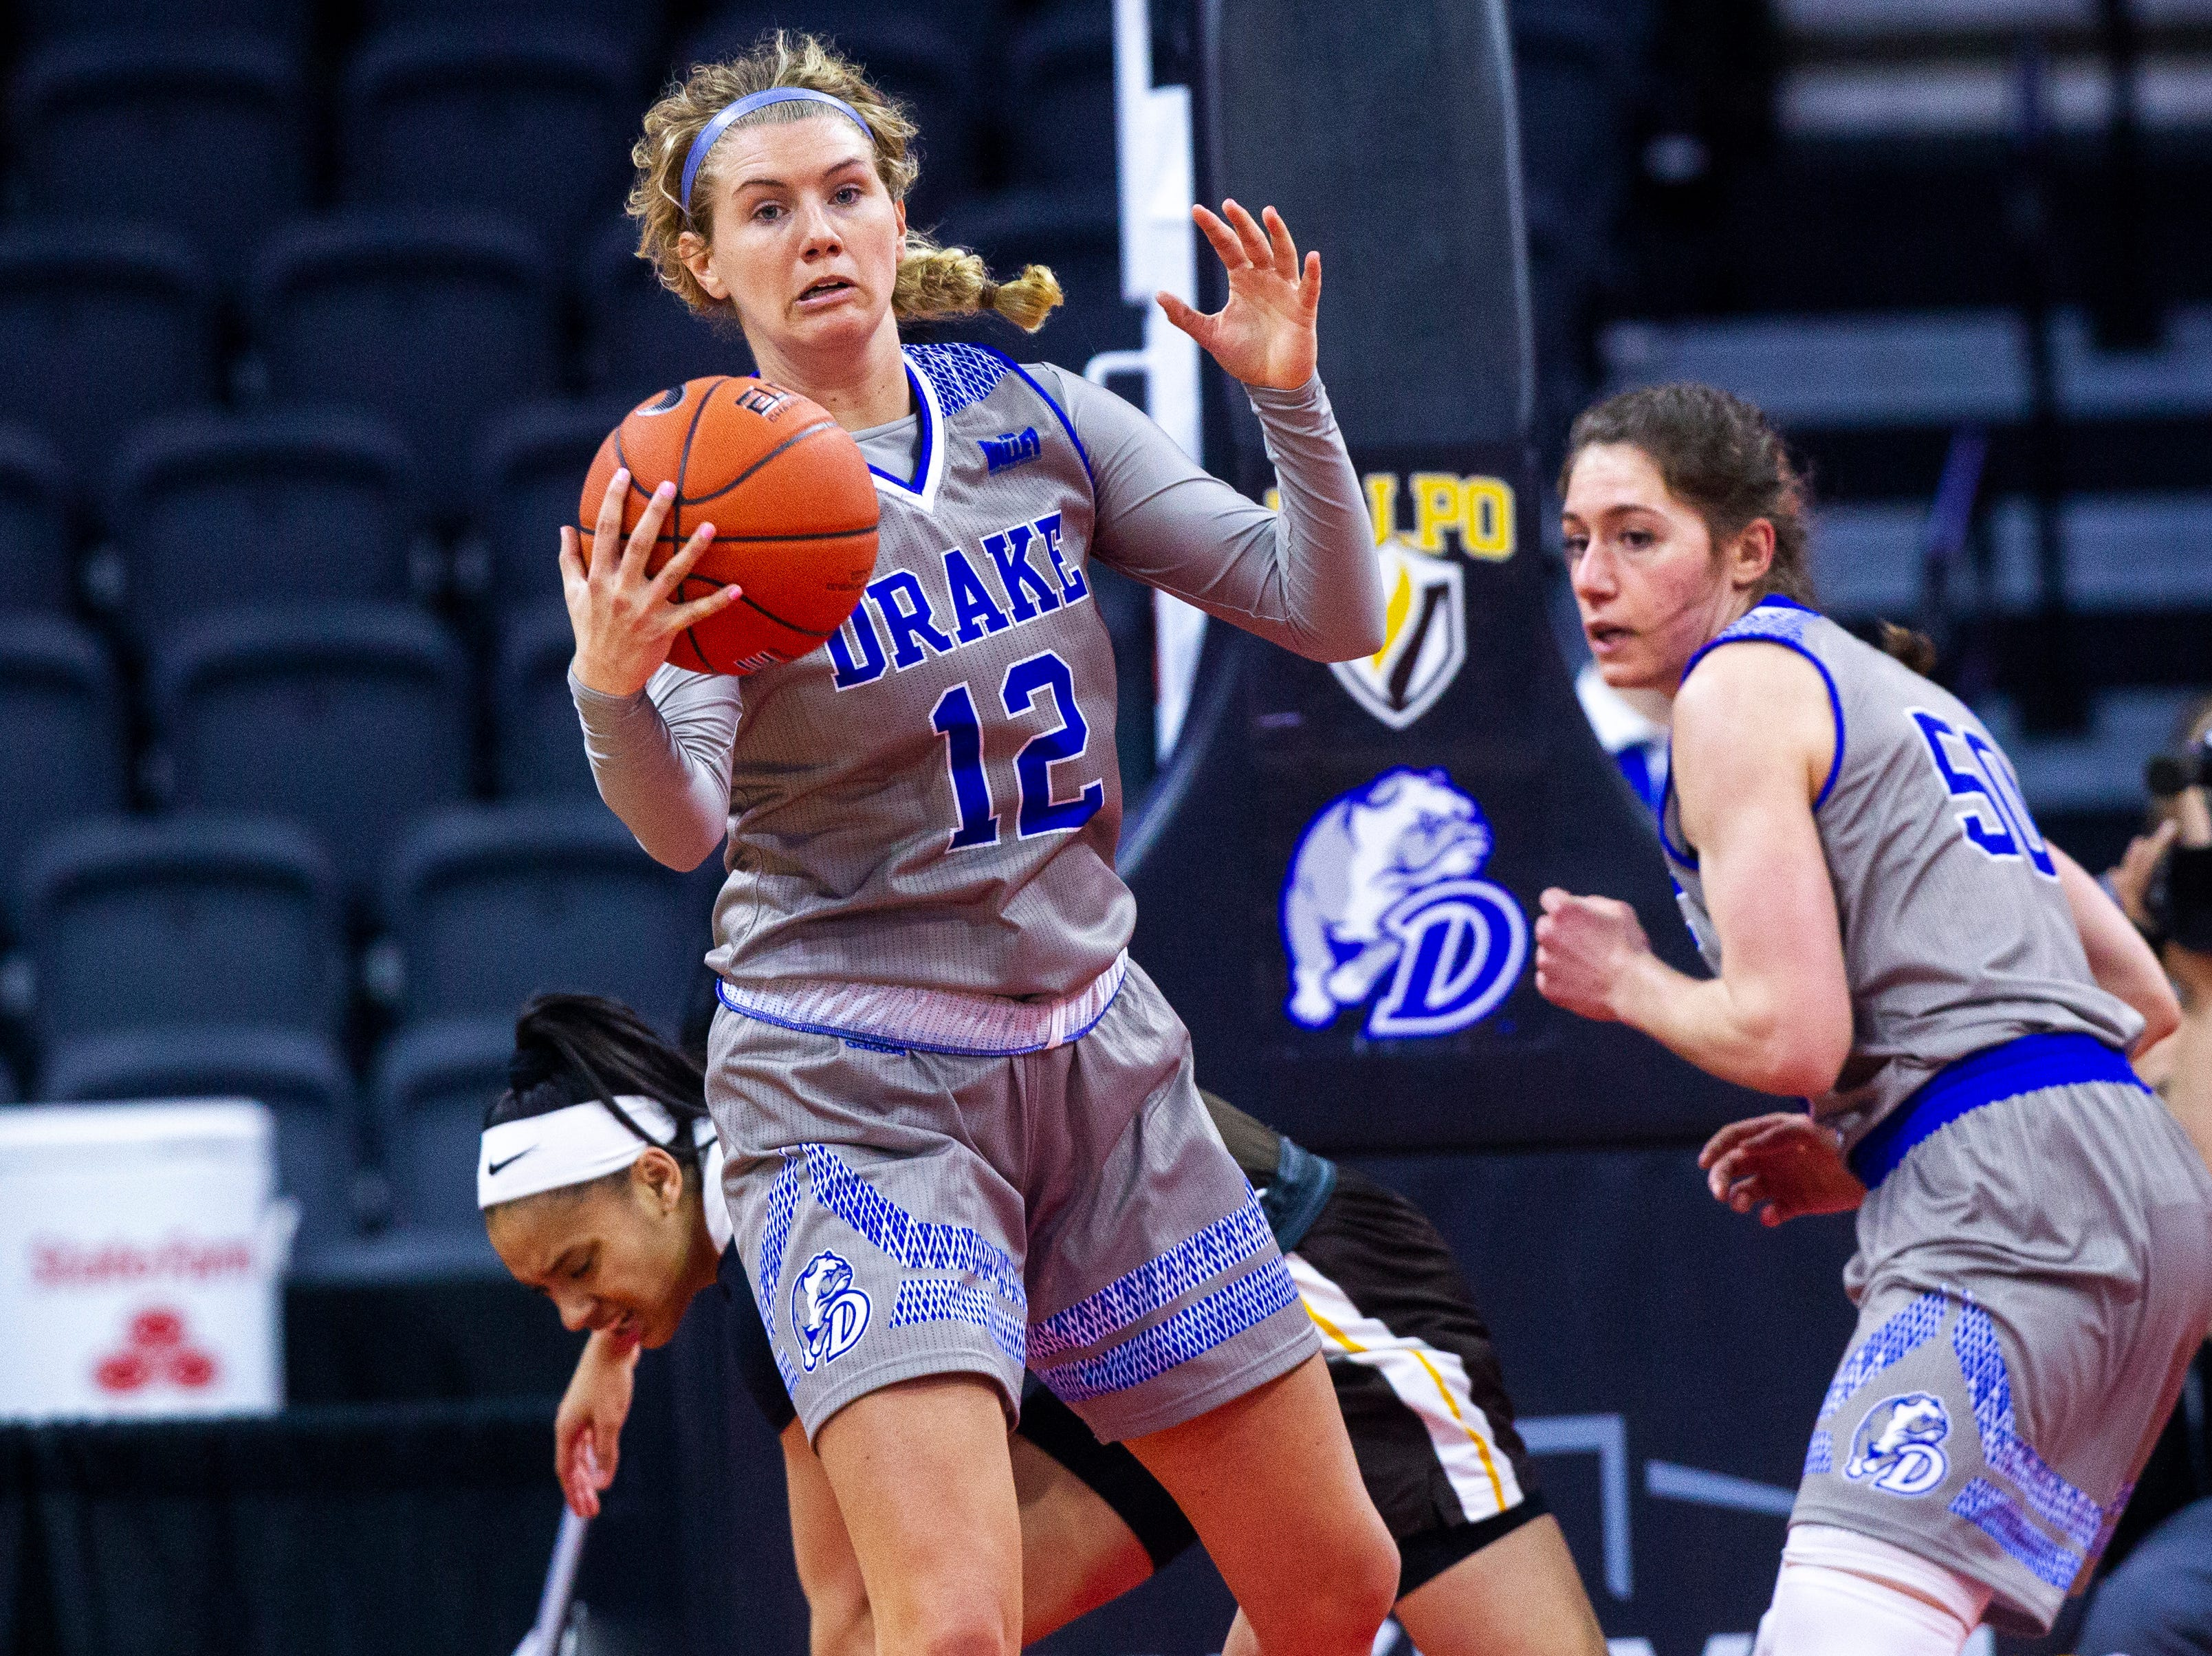 Drake's Brenni Rose (12) grabs a rebound during a NCAA Missouri Valley Conference women's basketball quarterfinal tournament game, Friday, March 15, 2019, at the TaxSlayer Center in Moline, Illinois.